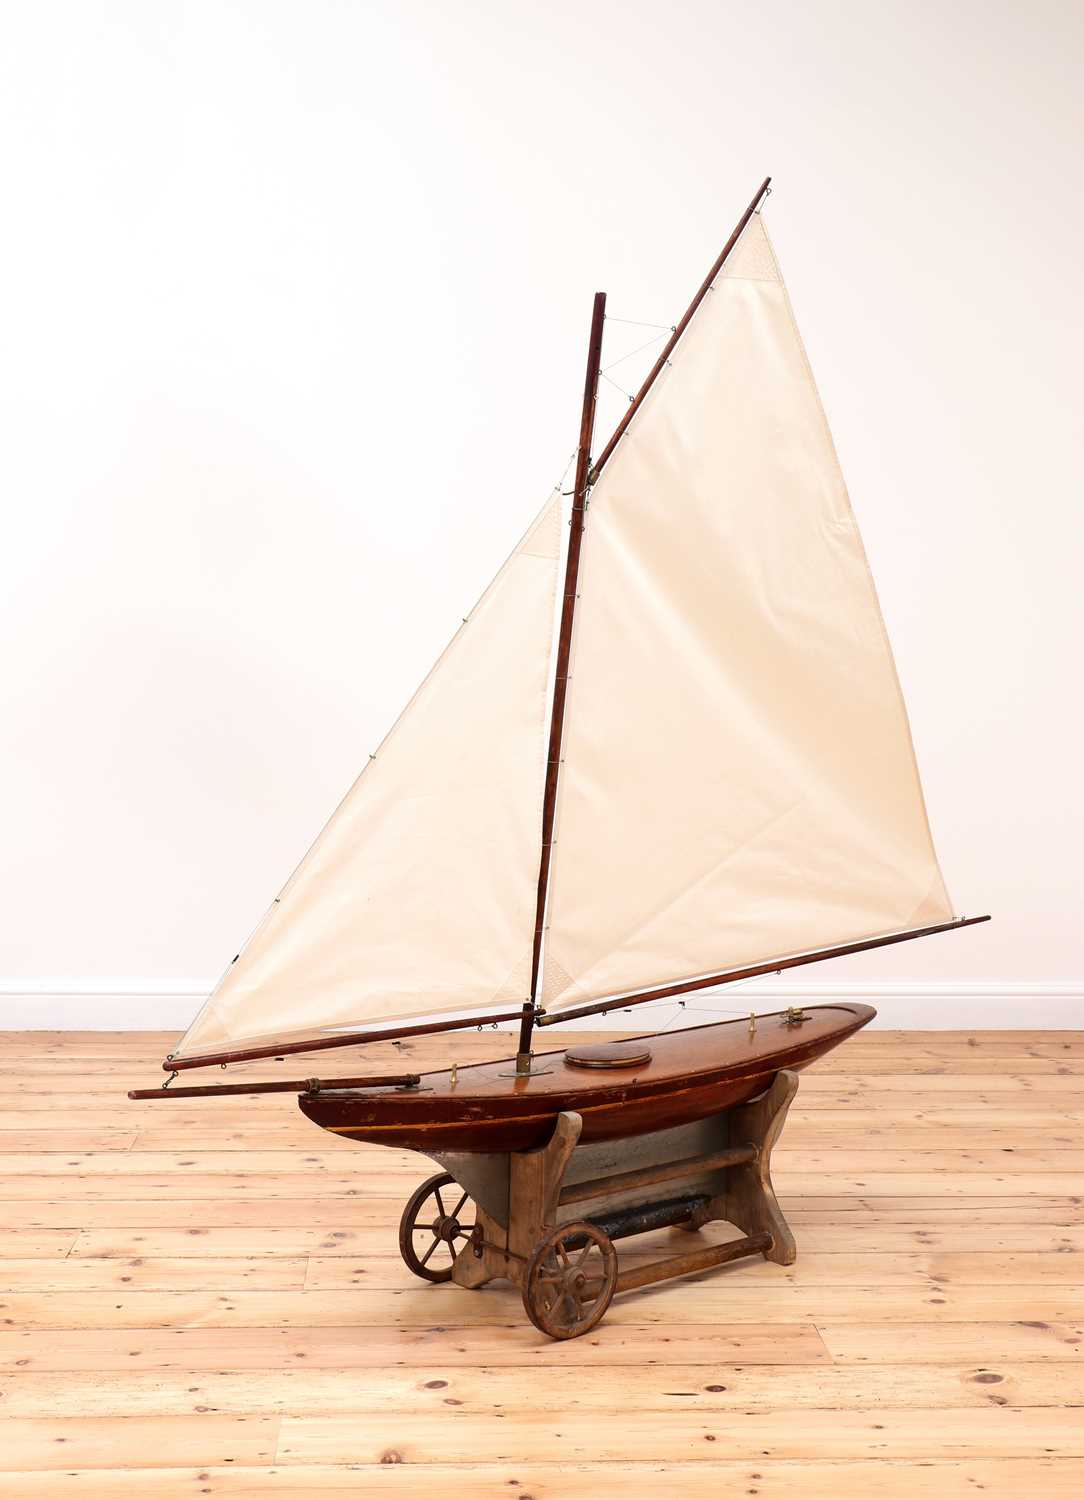 A large rigged pond yacht,